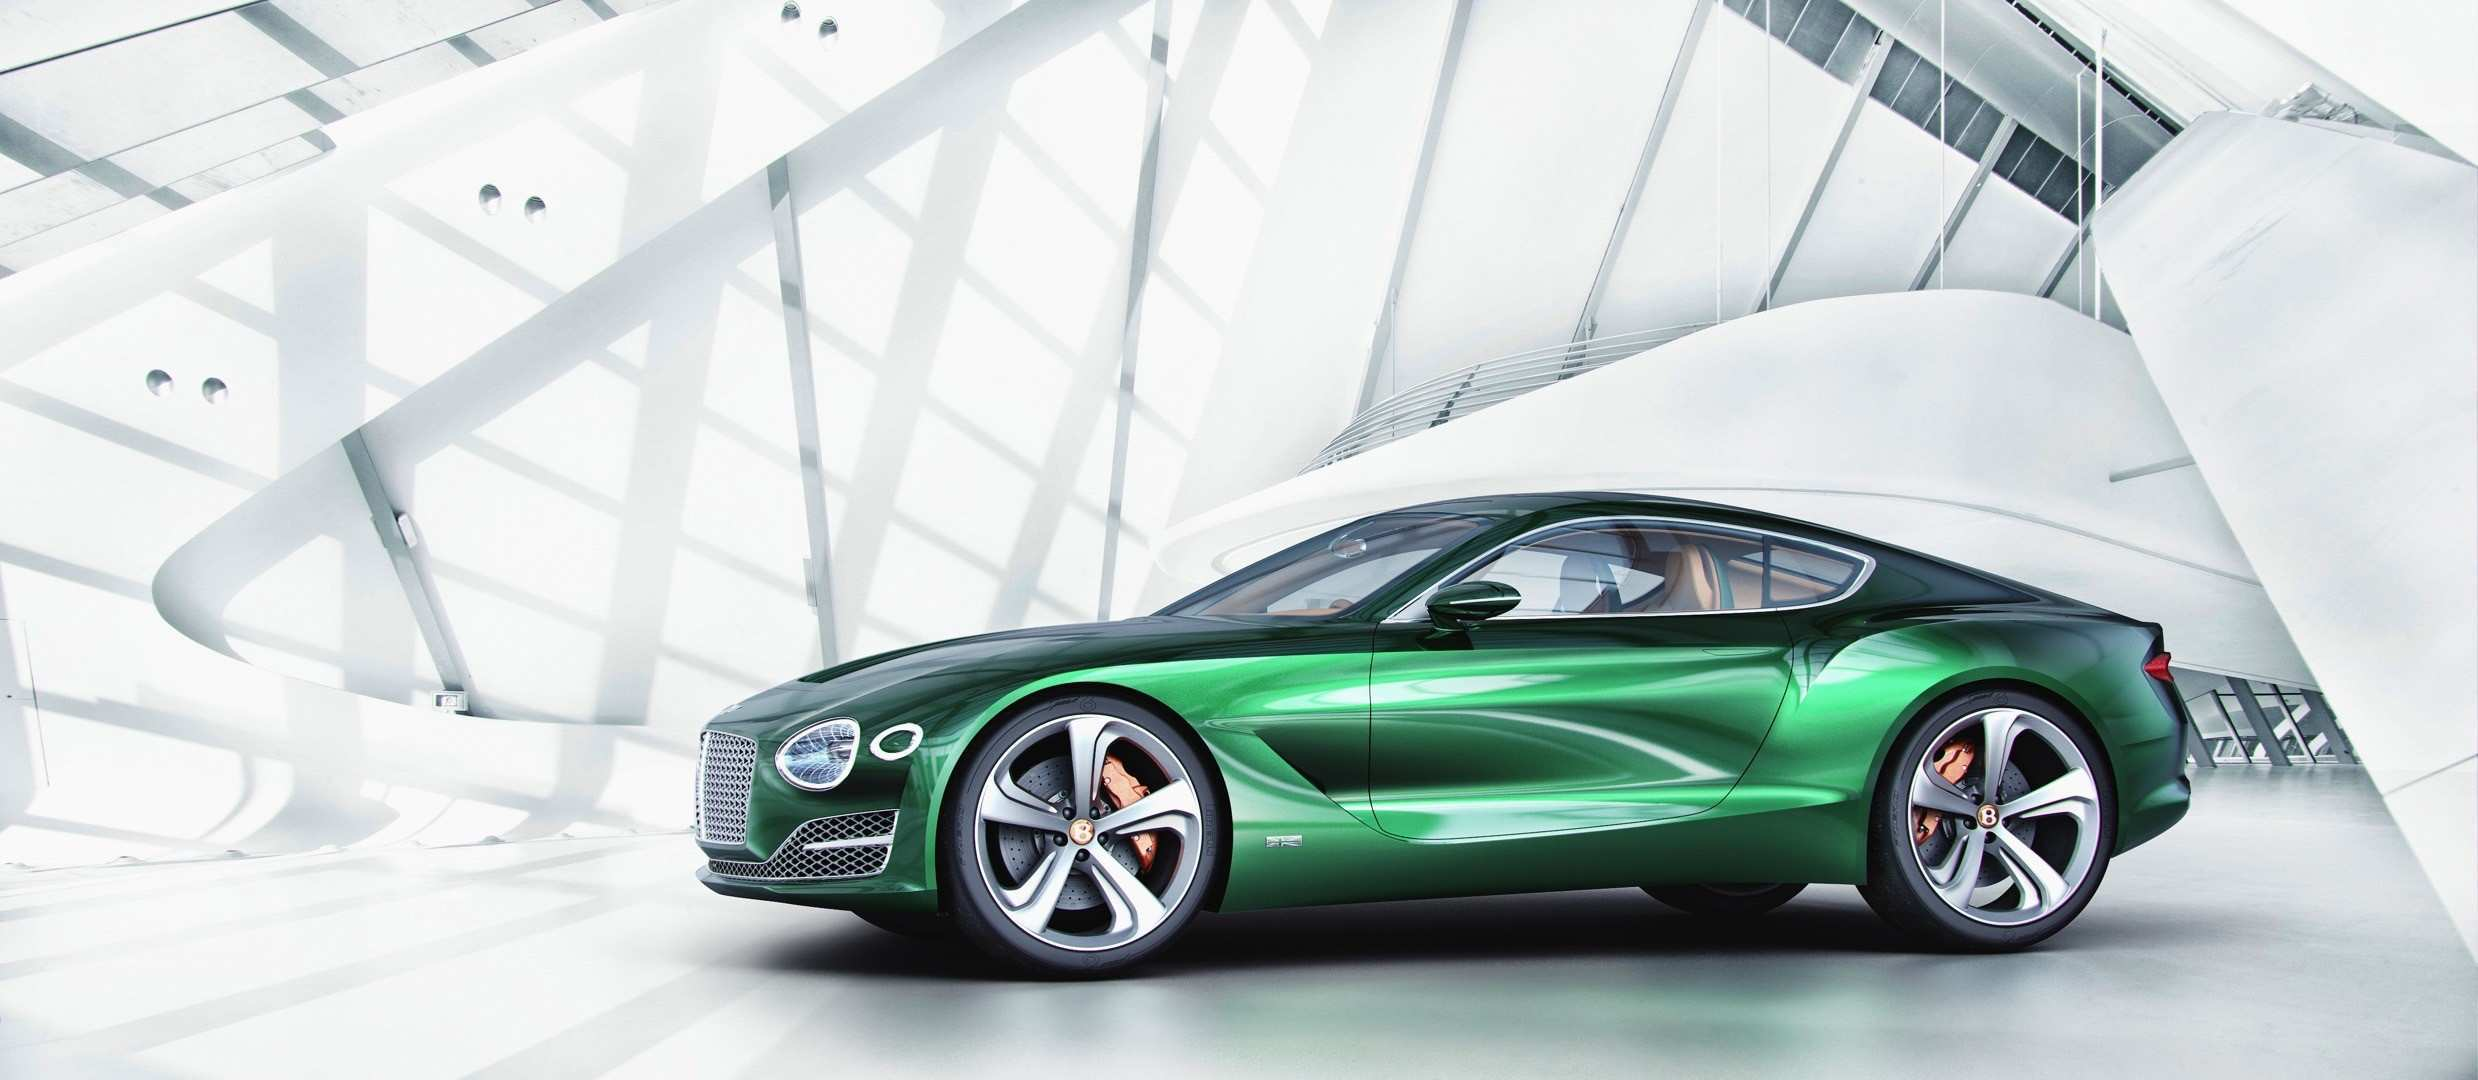 76 New Bentley 2019 Hypercar Exterior for Bentley 2019 Hypercar